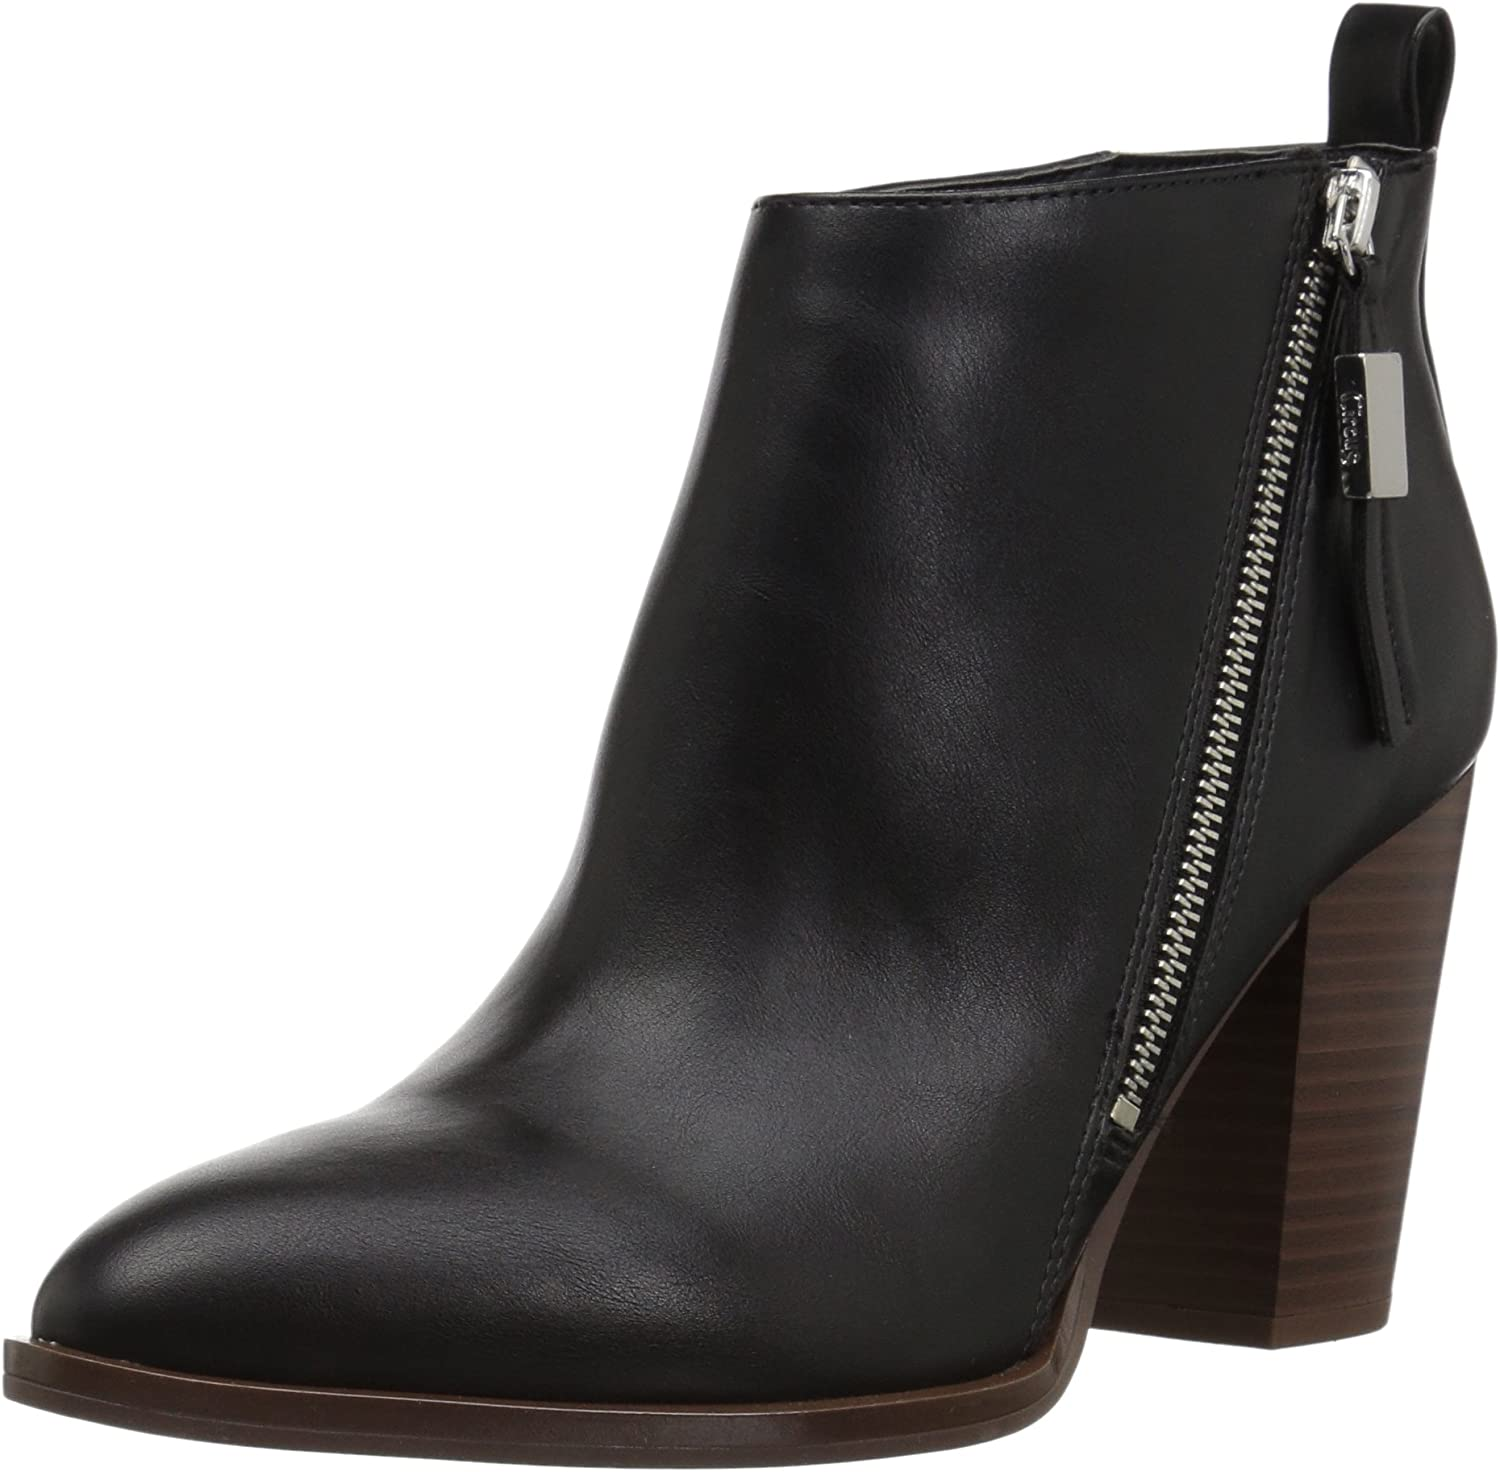 Circus by Sam Edelman Women's Blythe Ankle Boot